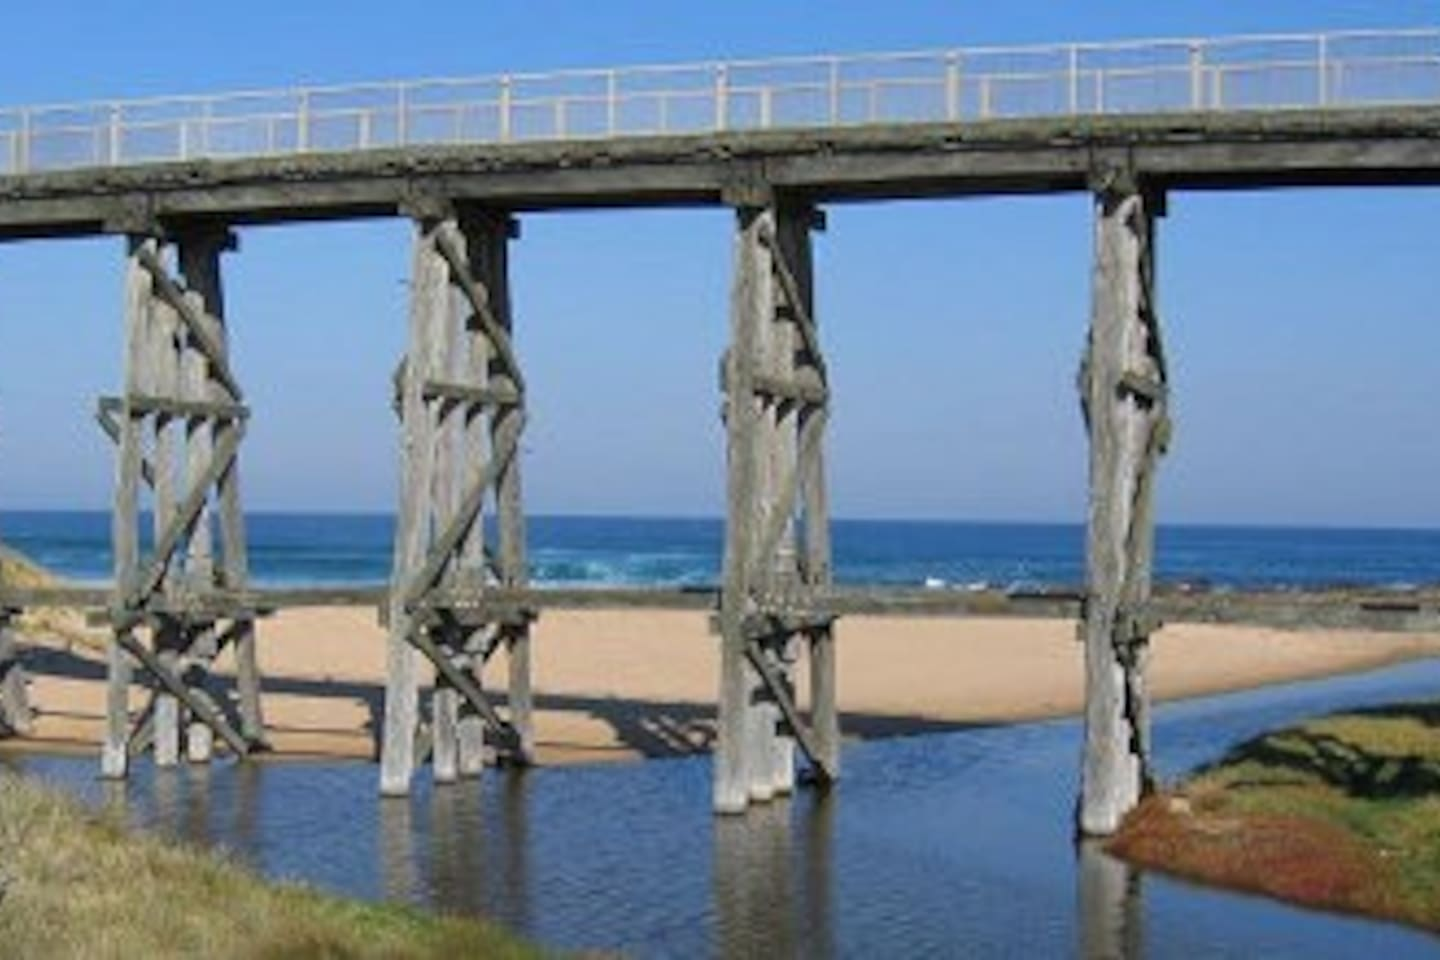 The Viaduct Kilcunda Beach a 5 minute walk from Earth n Sea Kilcunda featuring the beautiful historic railway bridge which is now a lovely walking track which epic views alone the pristine coastline and a world class surf break